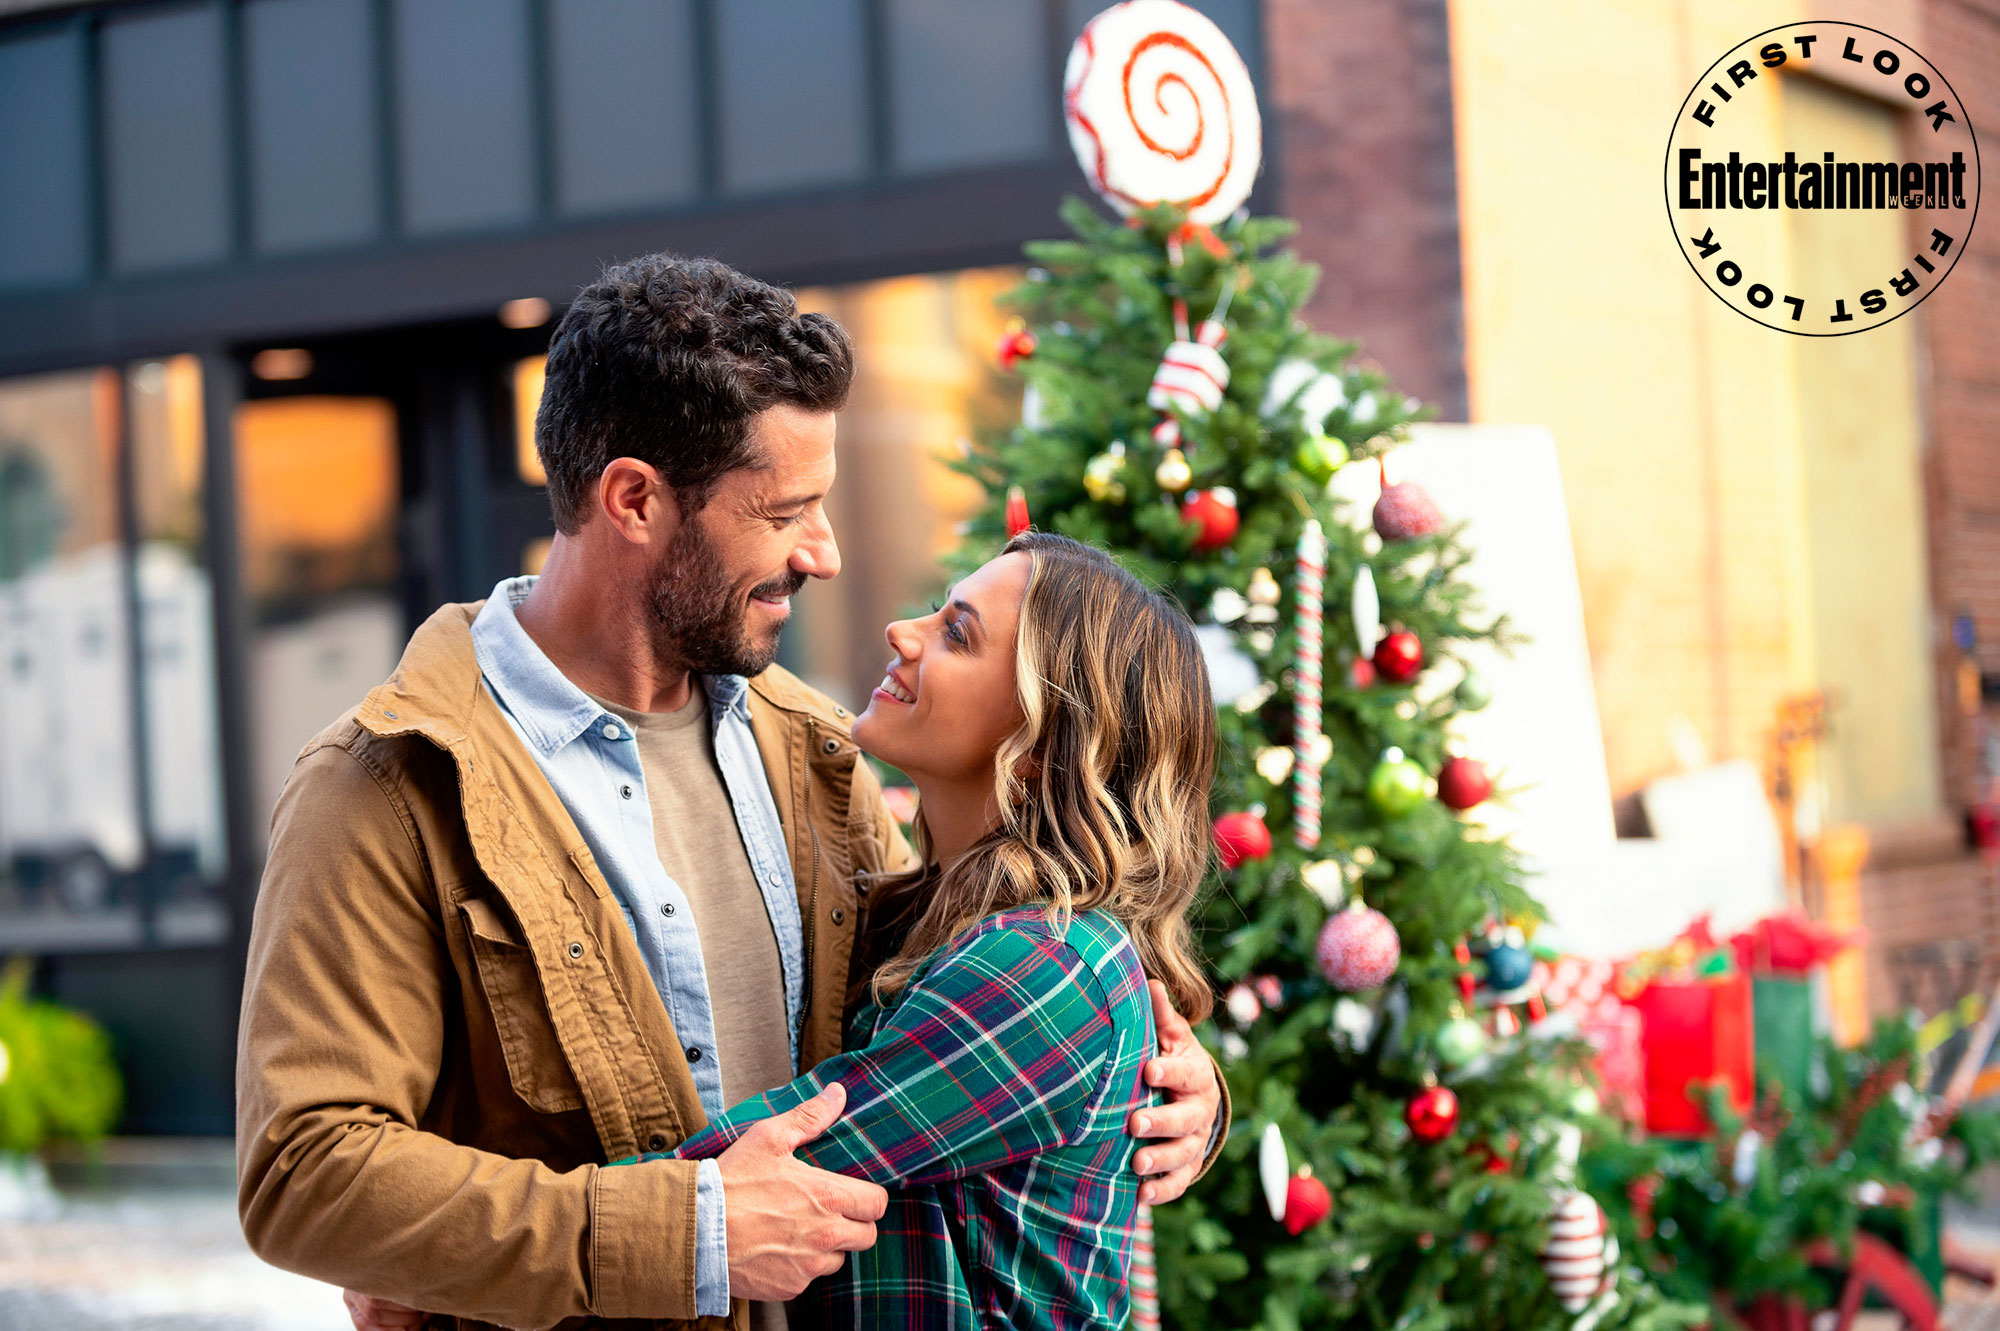 When Does The Irs Closed For Christmas 2020 See 2020 Lifetime Christmas movie schedule, photos | EW.com